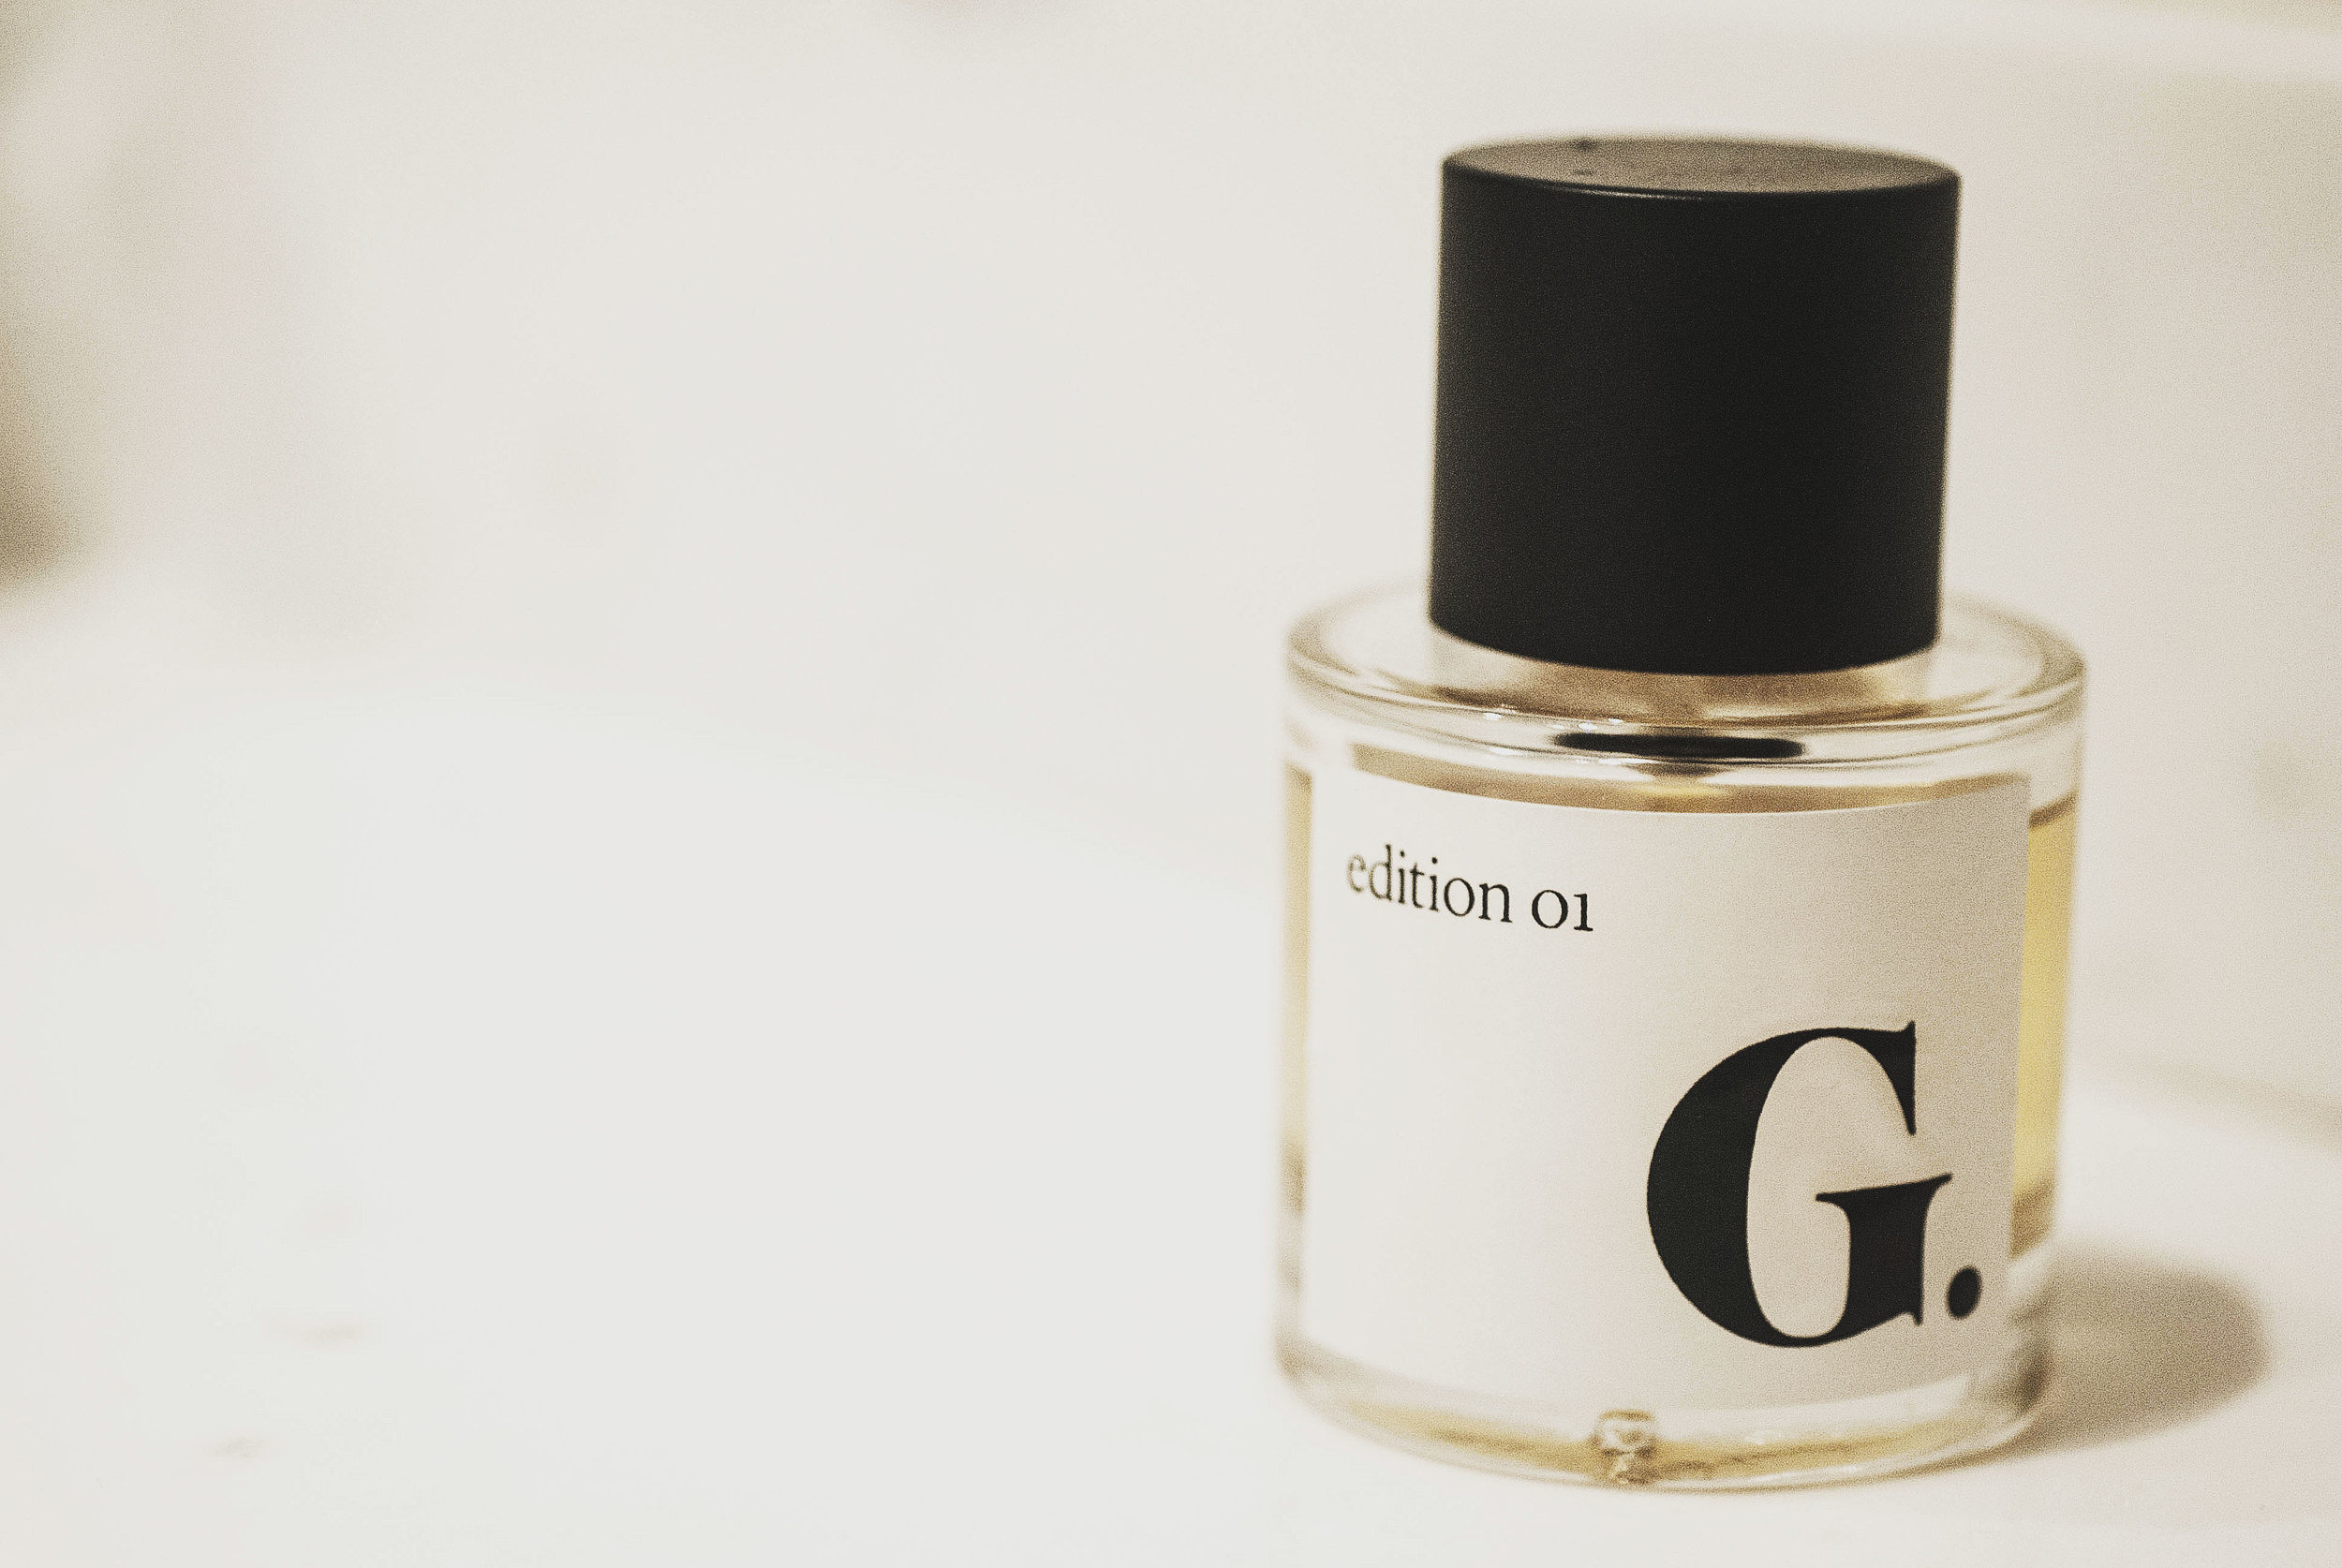 perfume goop - On the hunt for the perfect fragrance